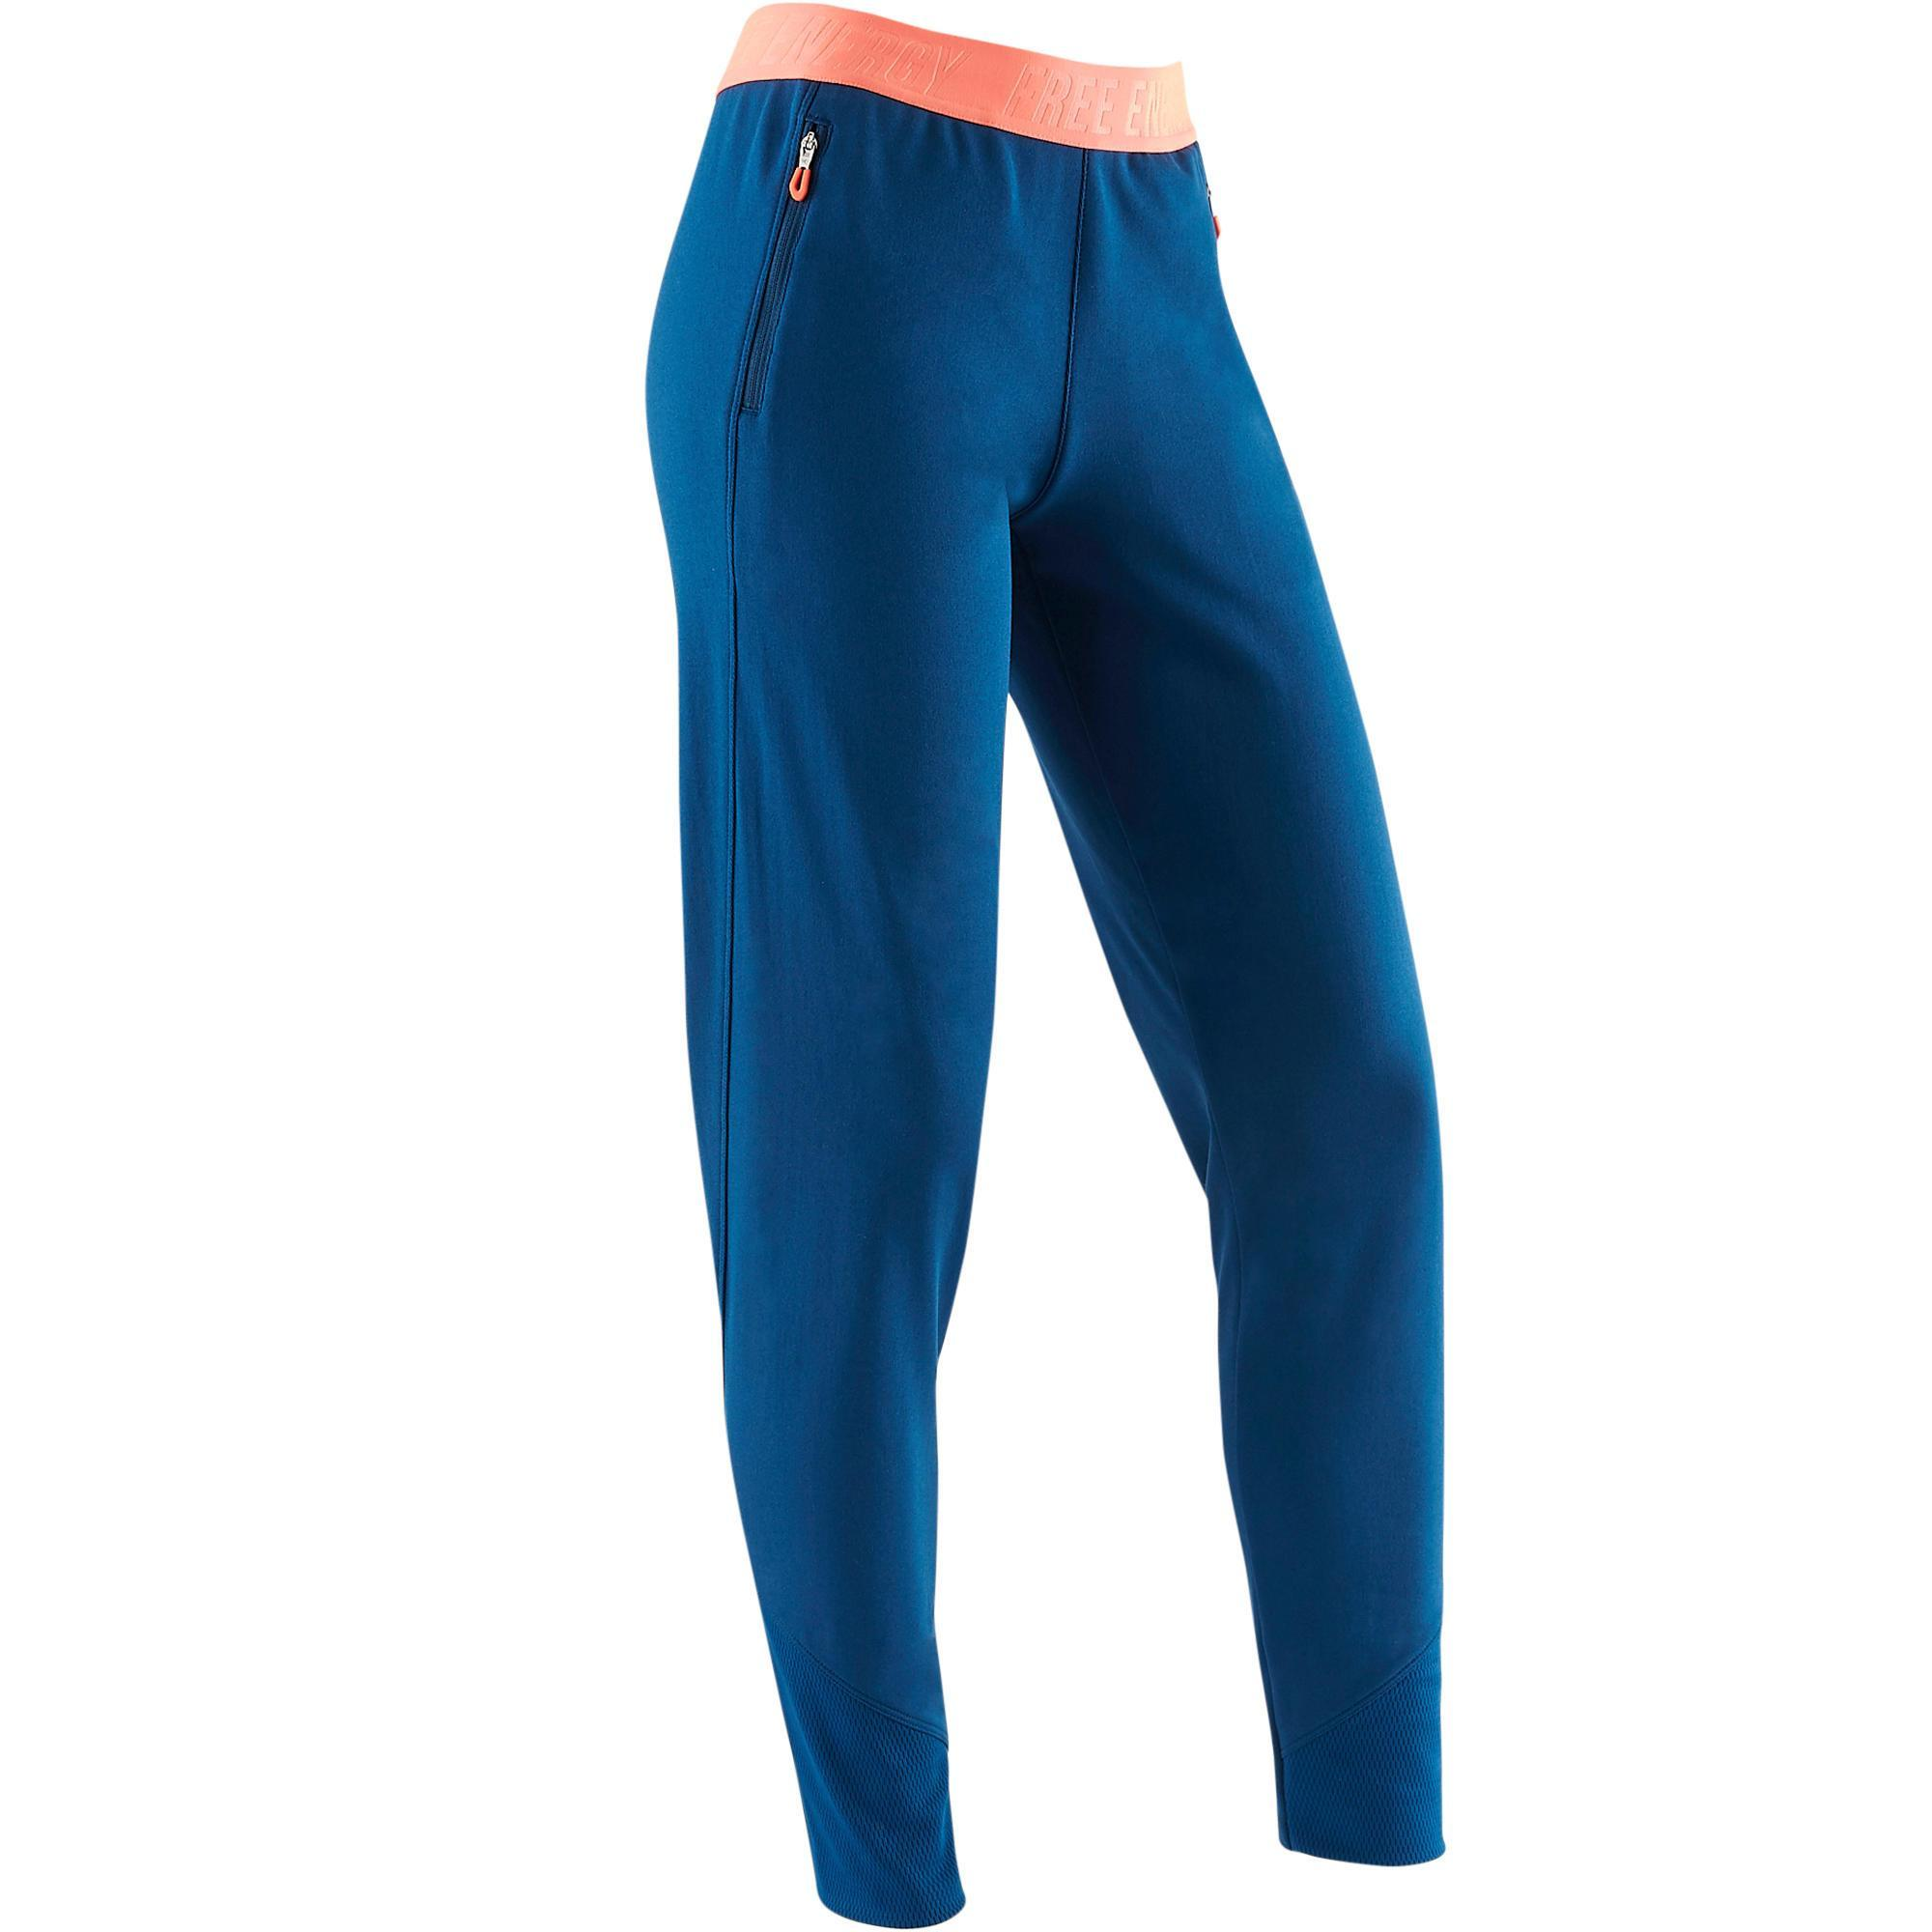 Kinder Domyos Trainingshose Slim S900 Gym Kinder blau | 03608419176070